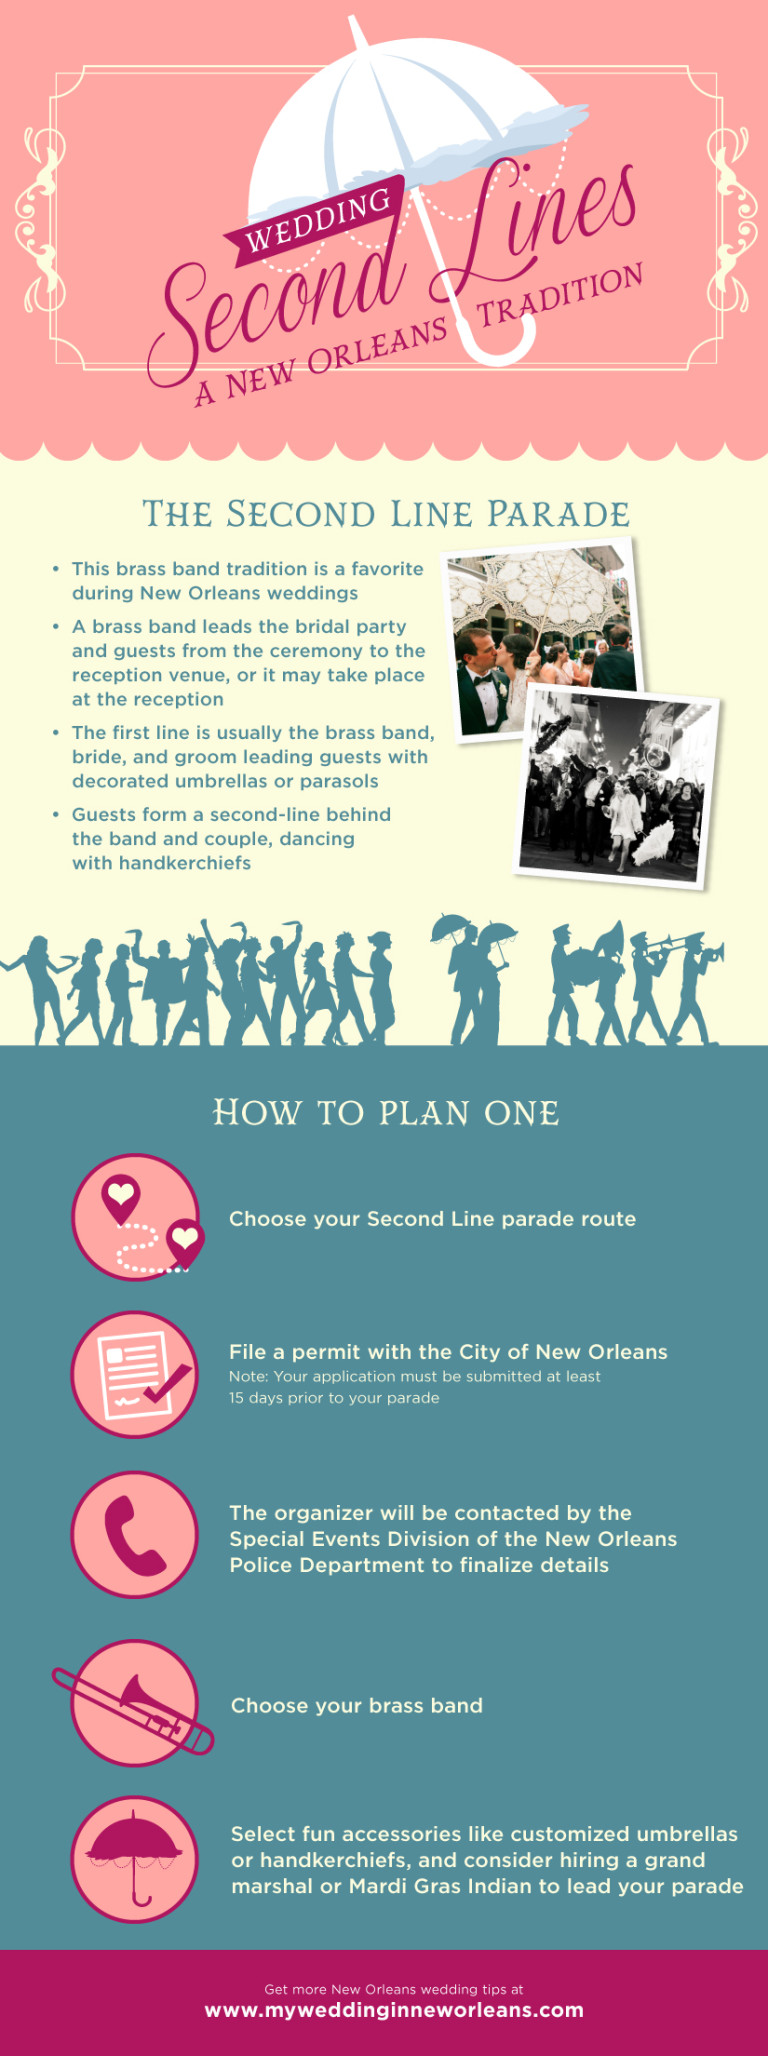 How to Plan a Wedding Second Line in New Orleans Infographic